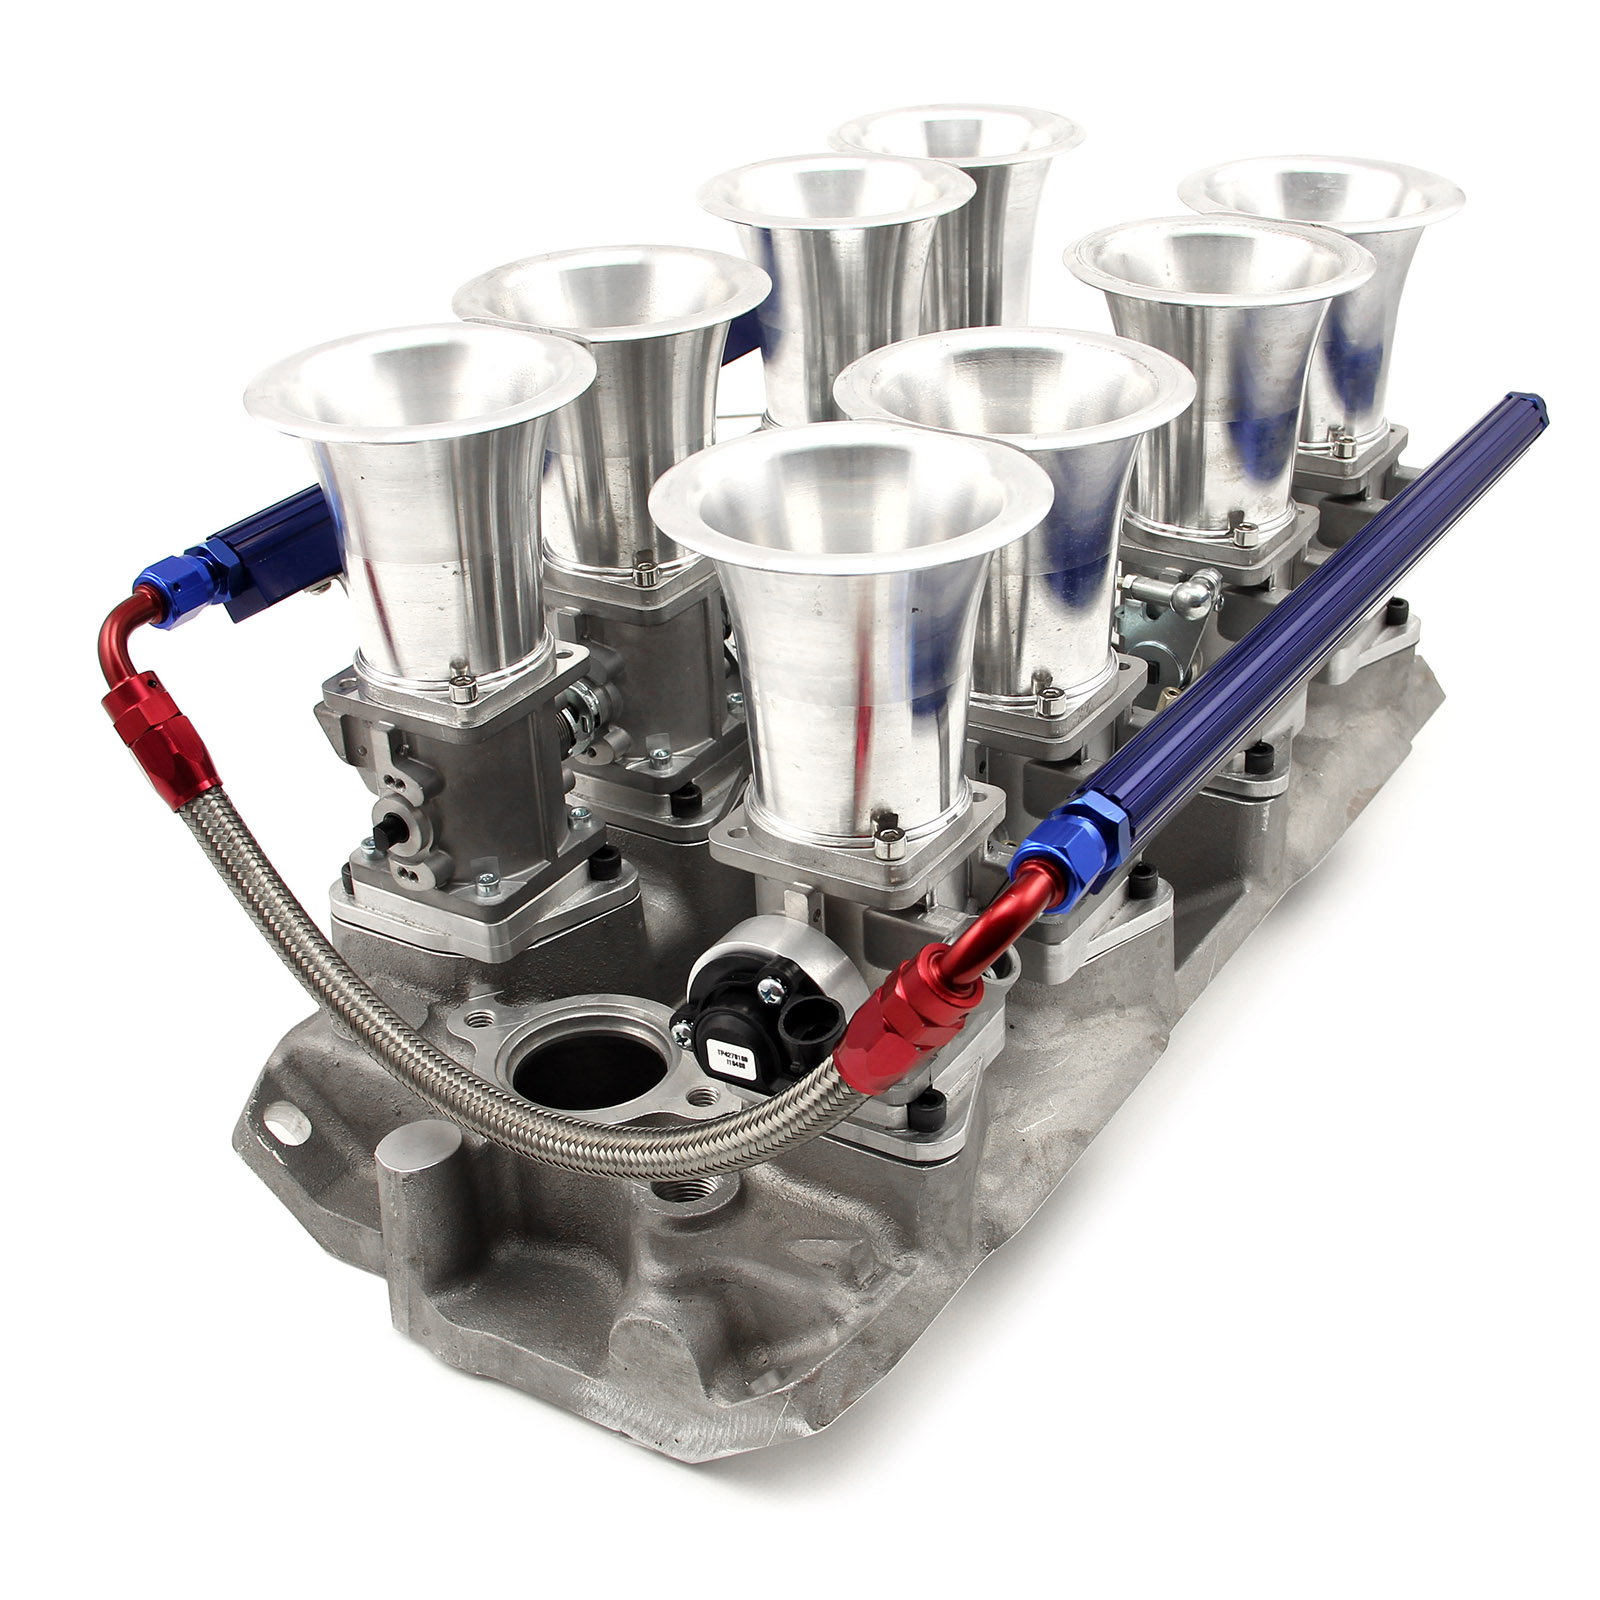 Stock Ls1 Intake Height: Chevy SBC 350 Downdraft EFI Stack Intake Manifold System